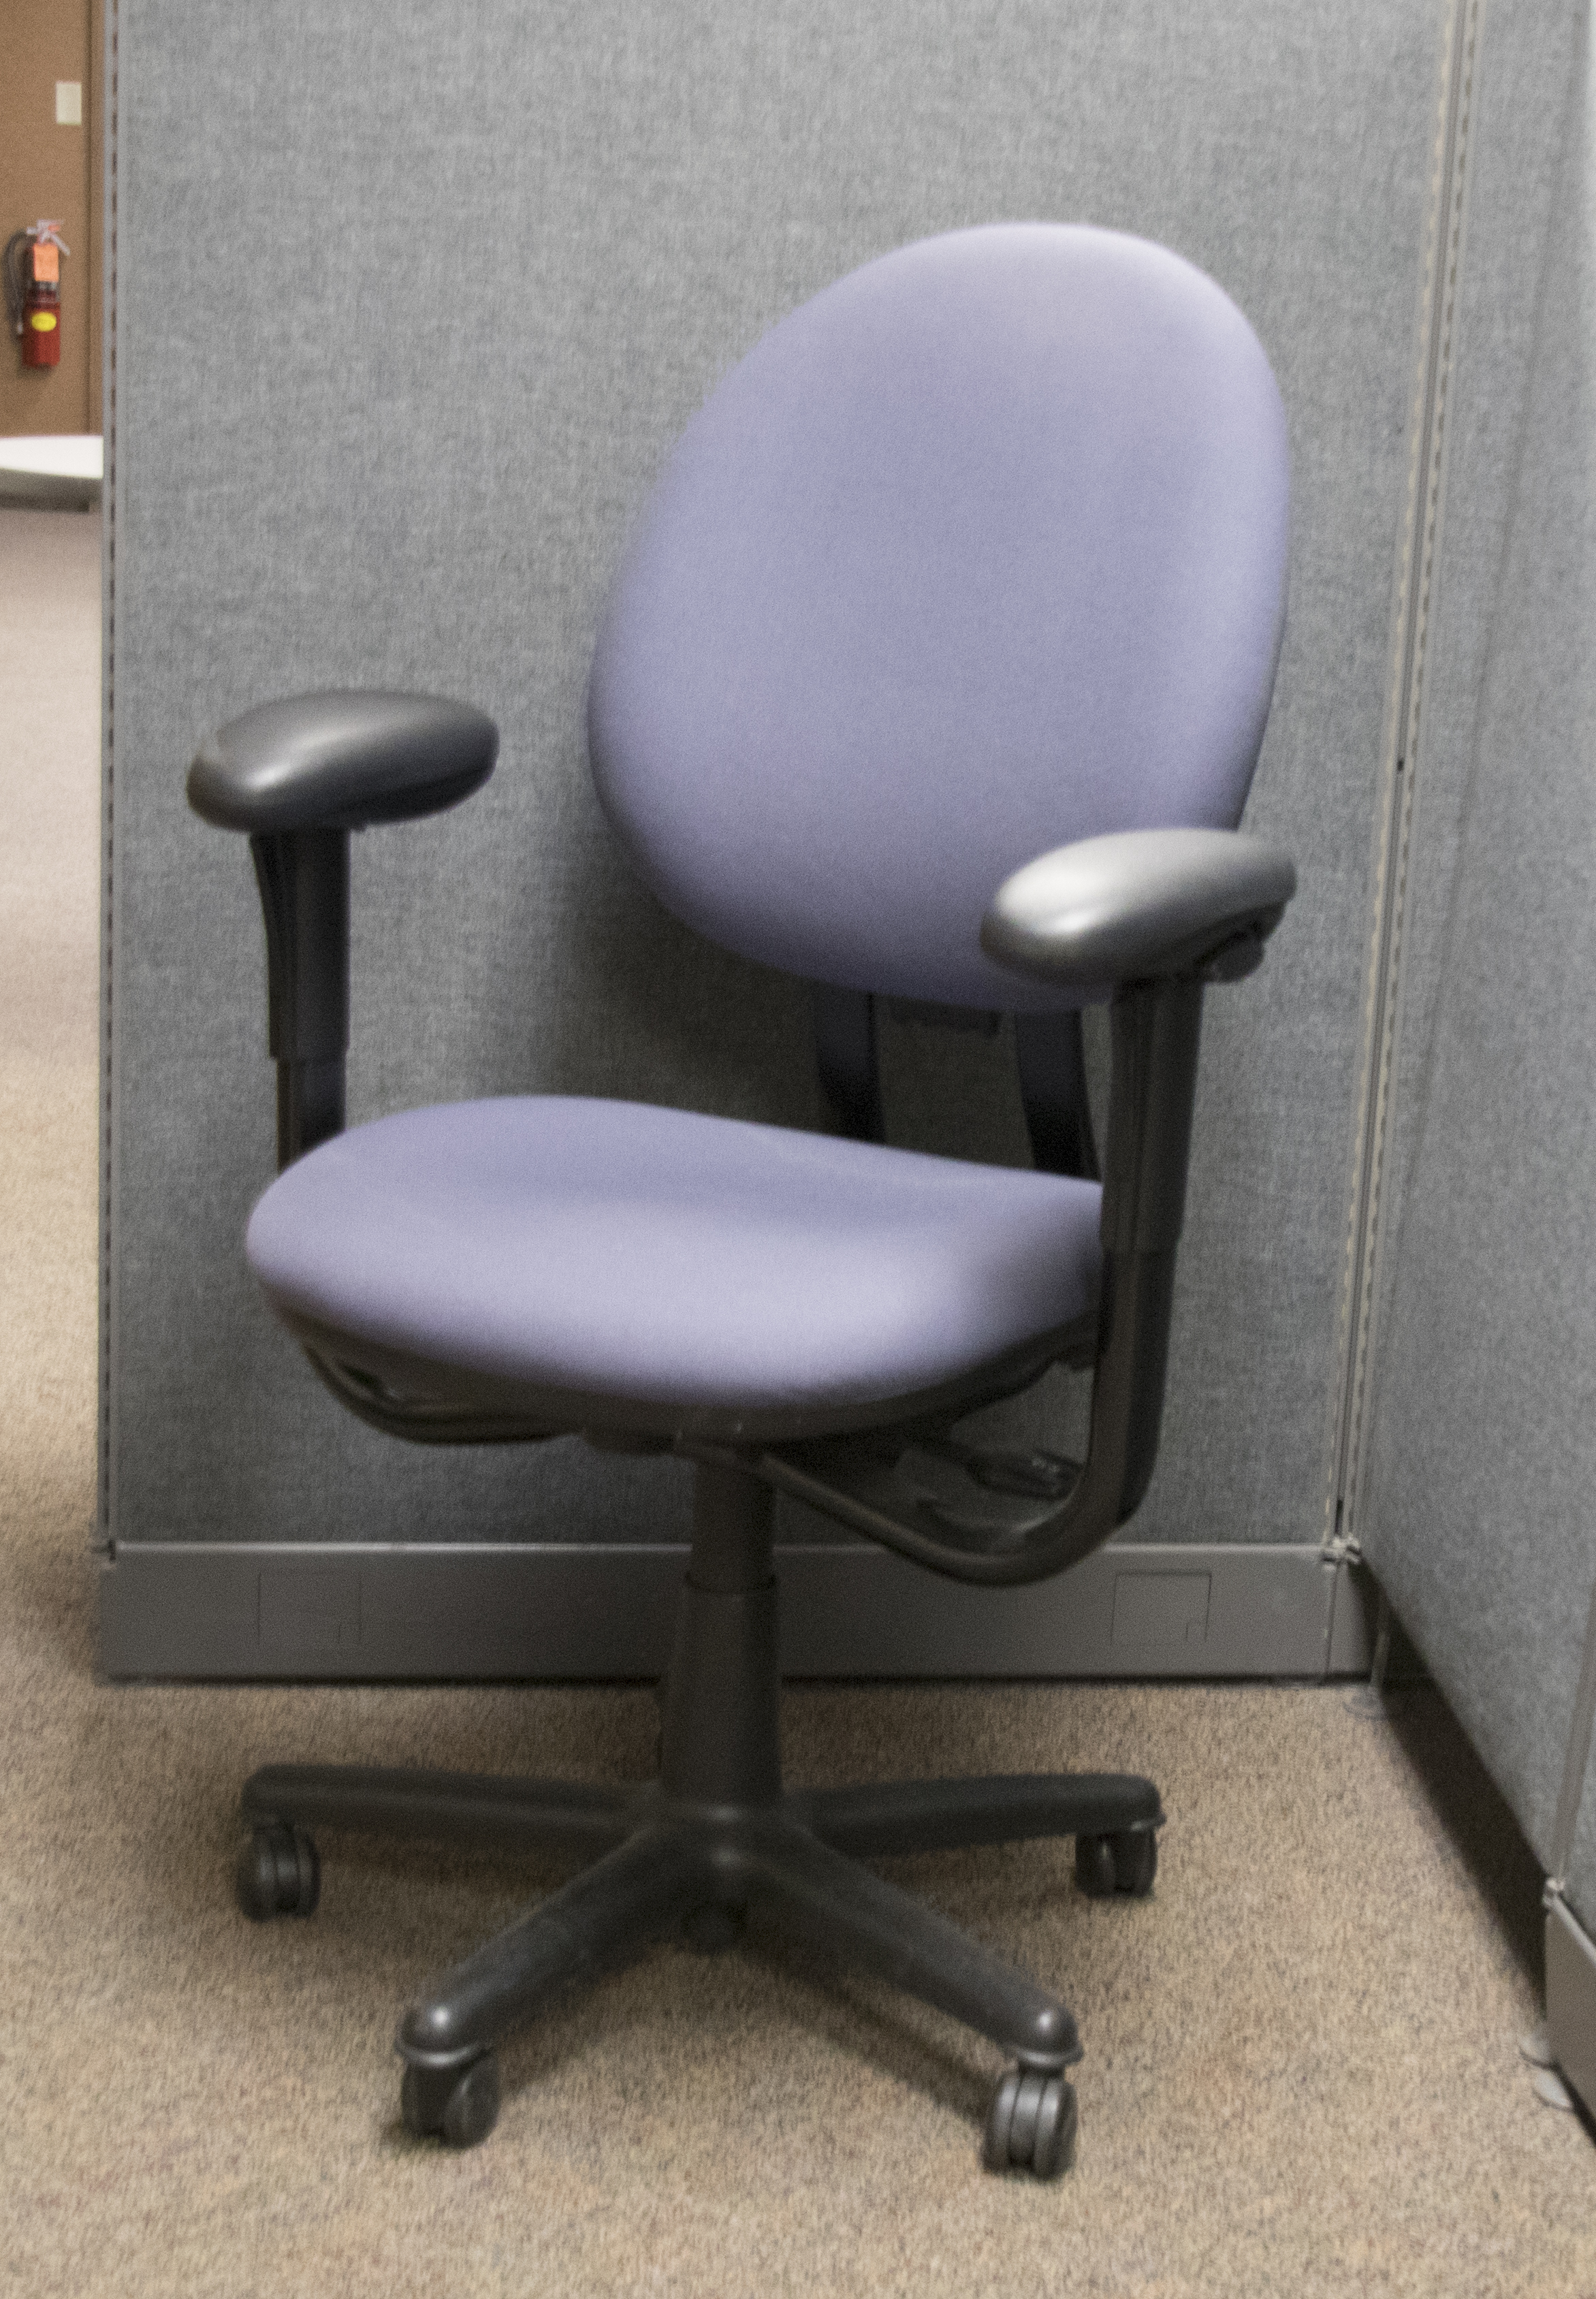 Blue office chairs (10 available)